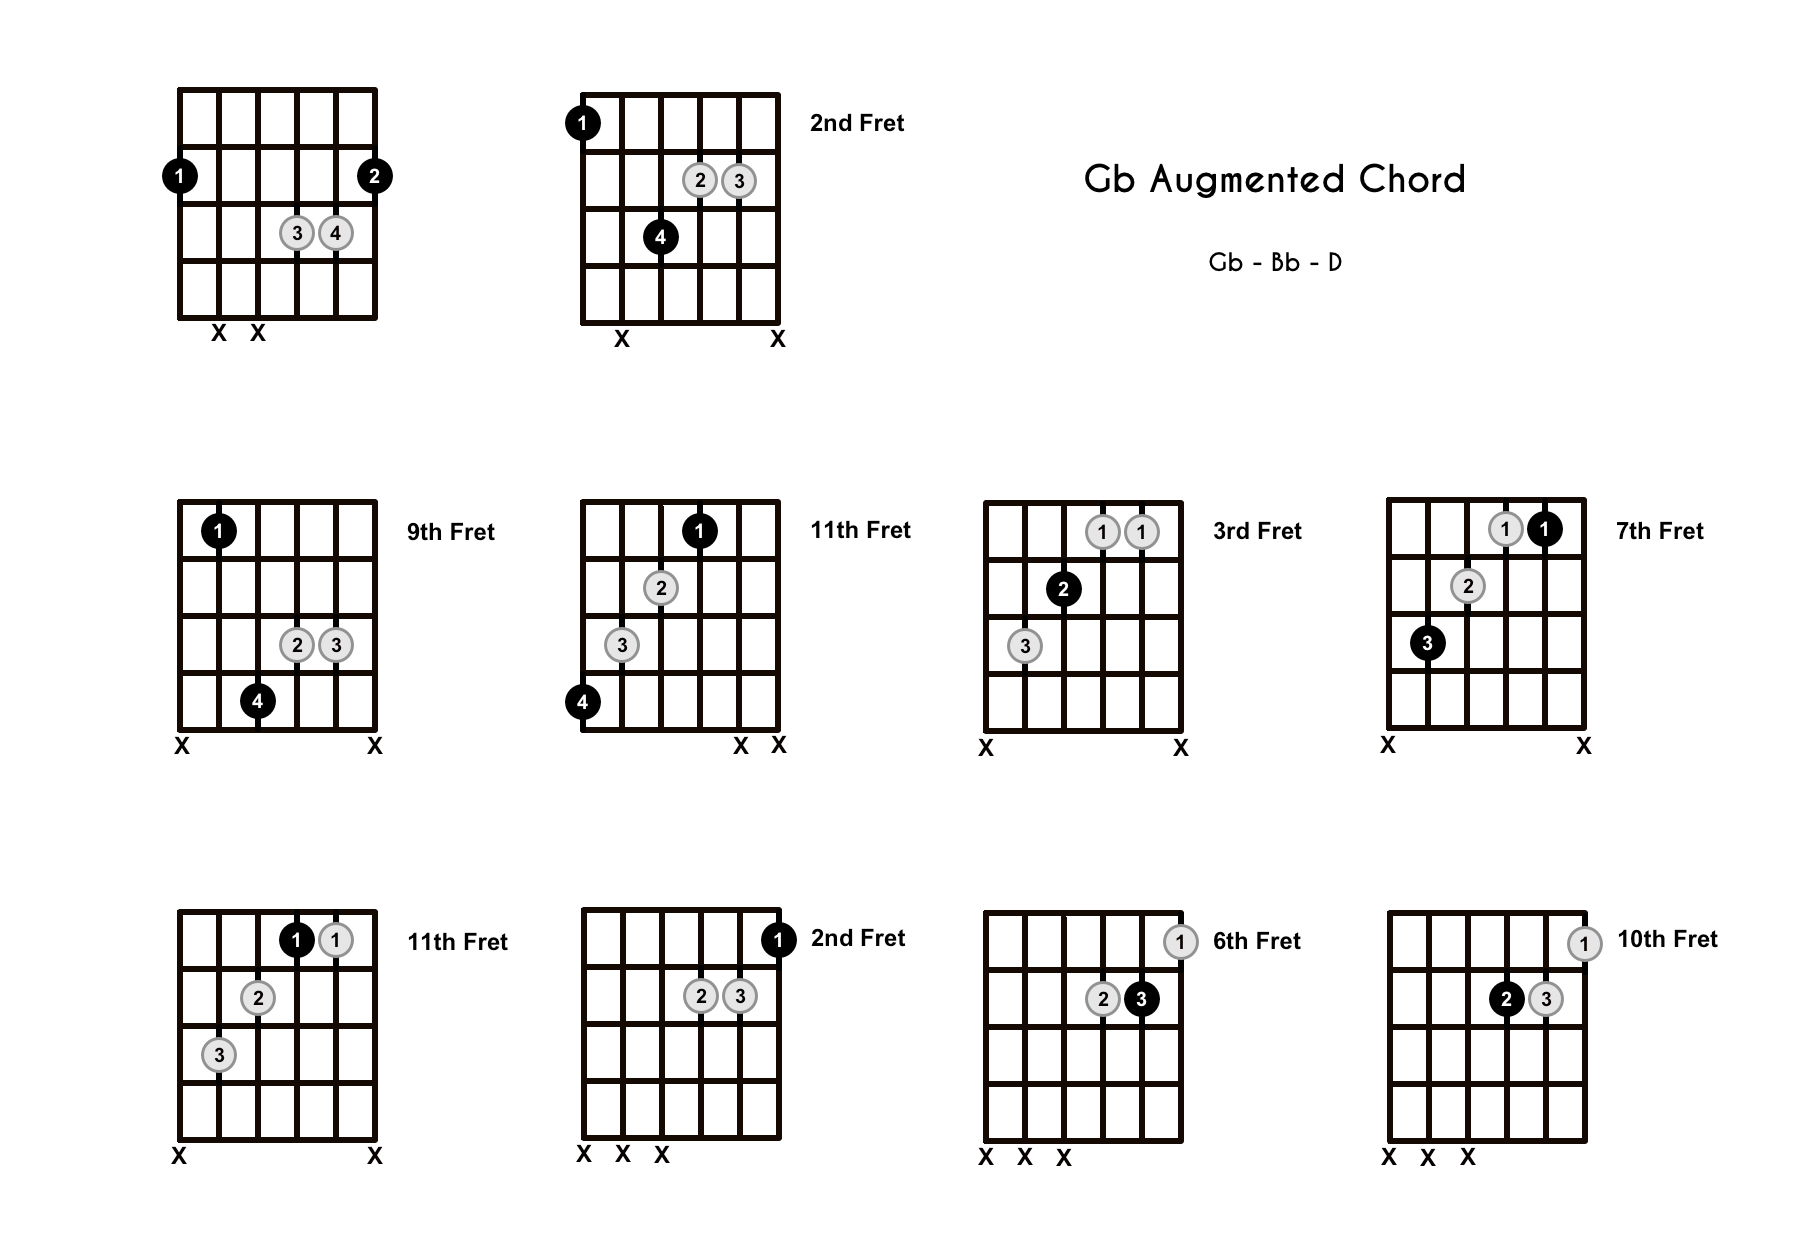 G Flat Augmented Chord on the Guitar (Gb+) – Diagrams, Finger Positions, Theory